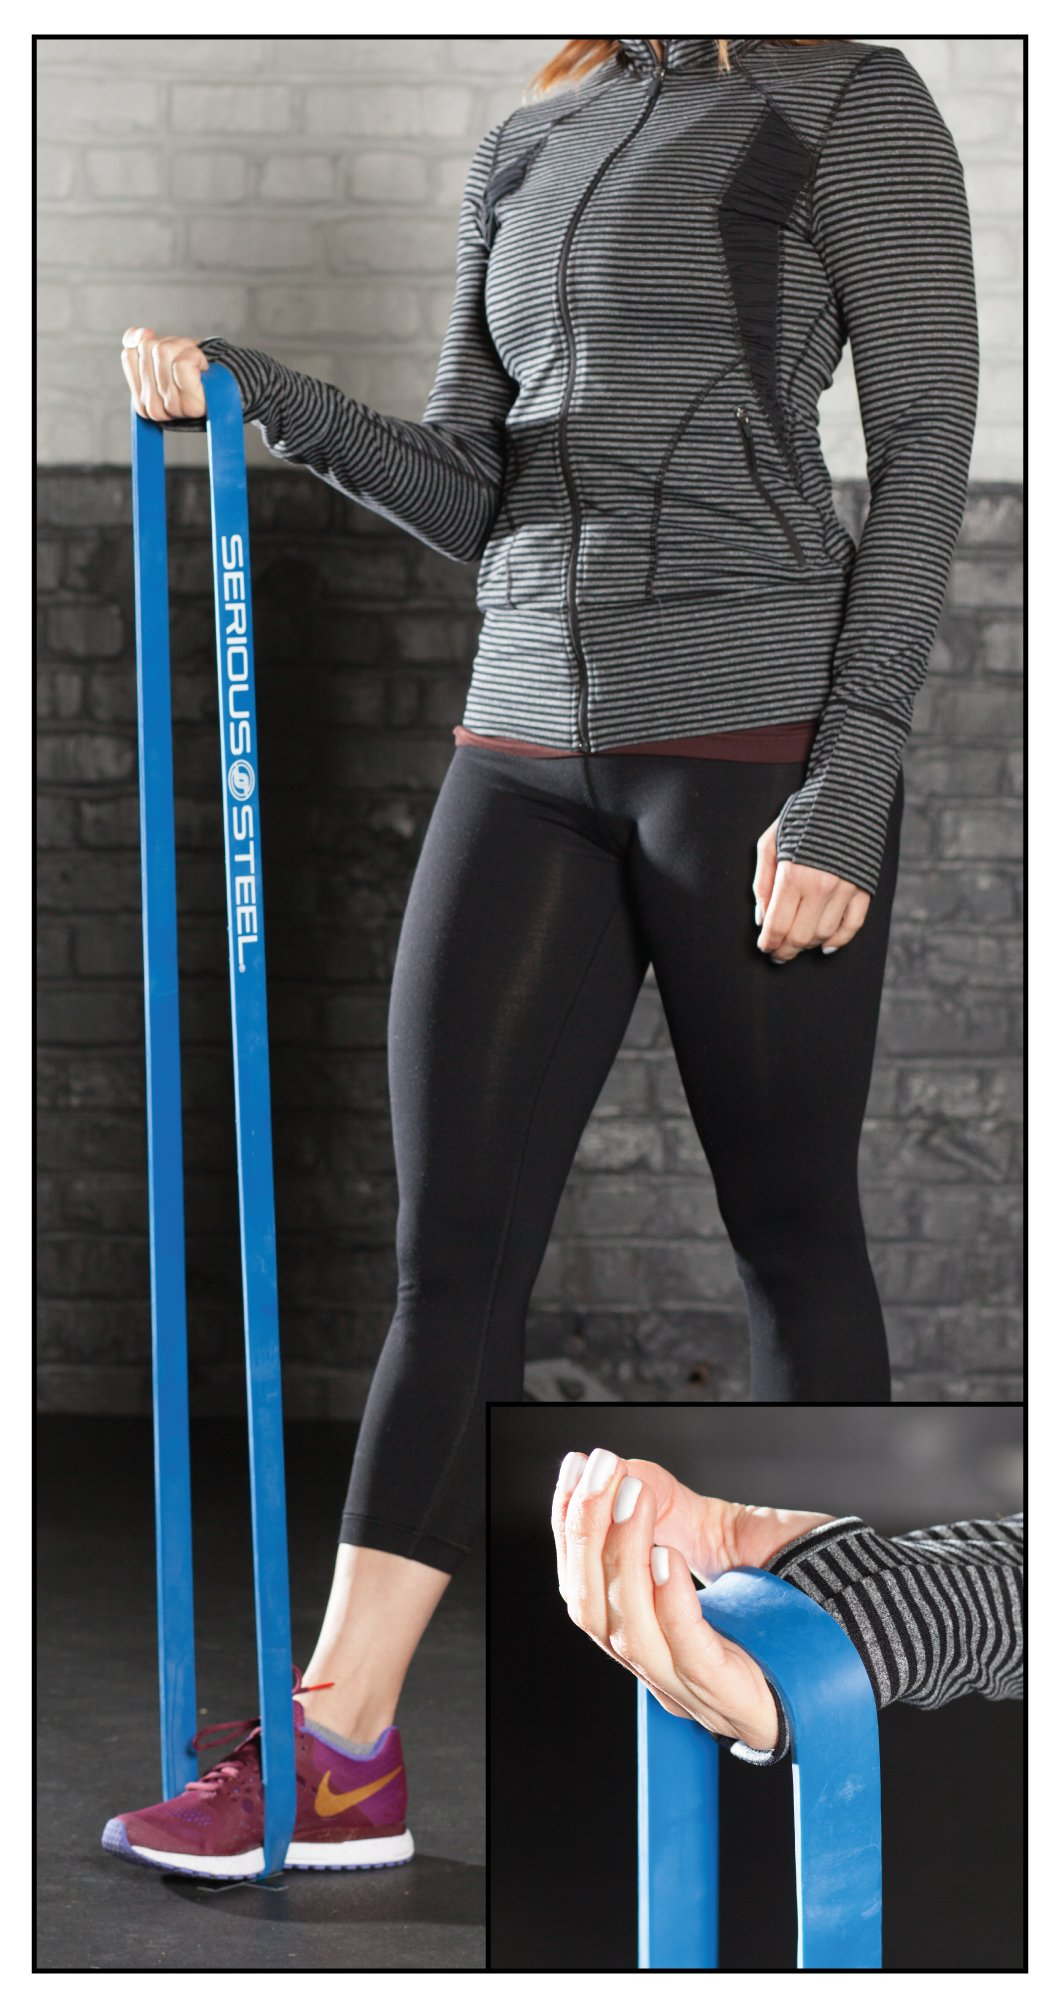 Serious Steel Fitness Beginner Assisted Pull-up &Crossfit Resistance Band Package#2, 3 Band Set (10-80 lbs) Free Pull-up and Band Starter e-Guide by Serious Steel Fitness (Image #7)